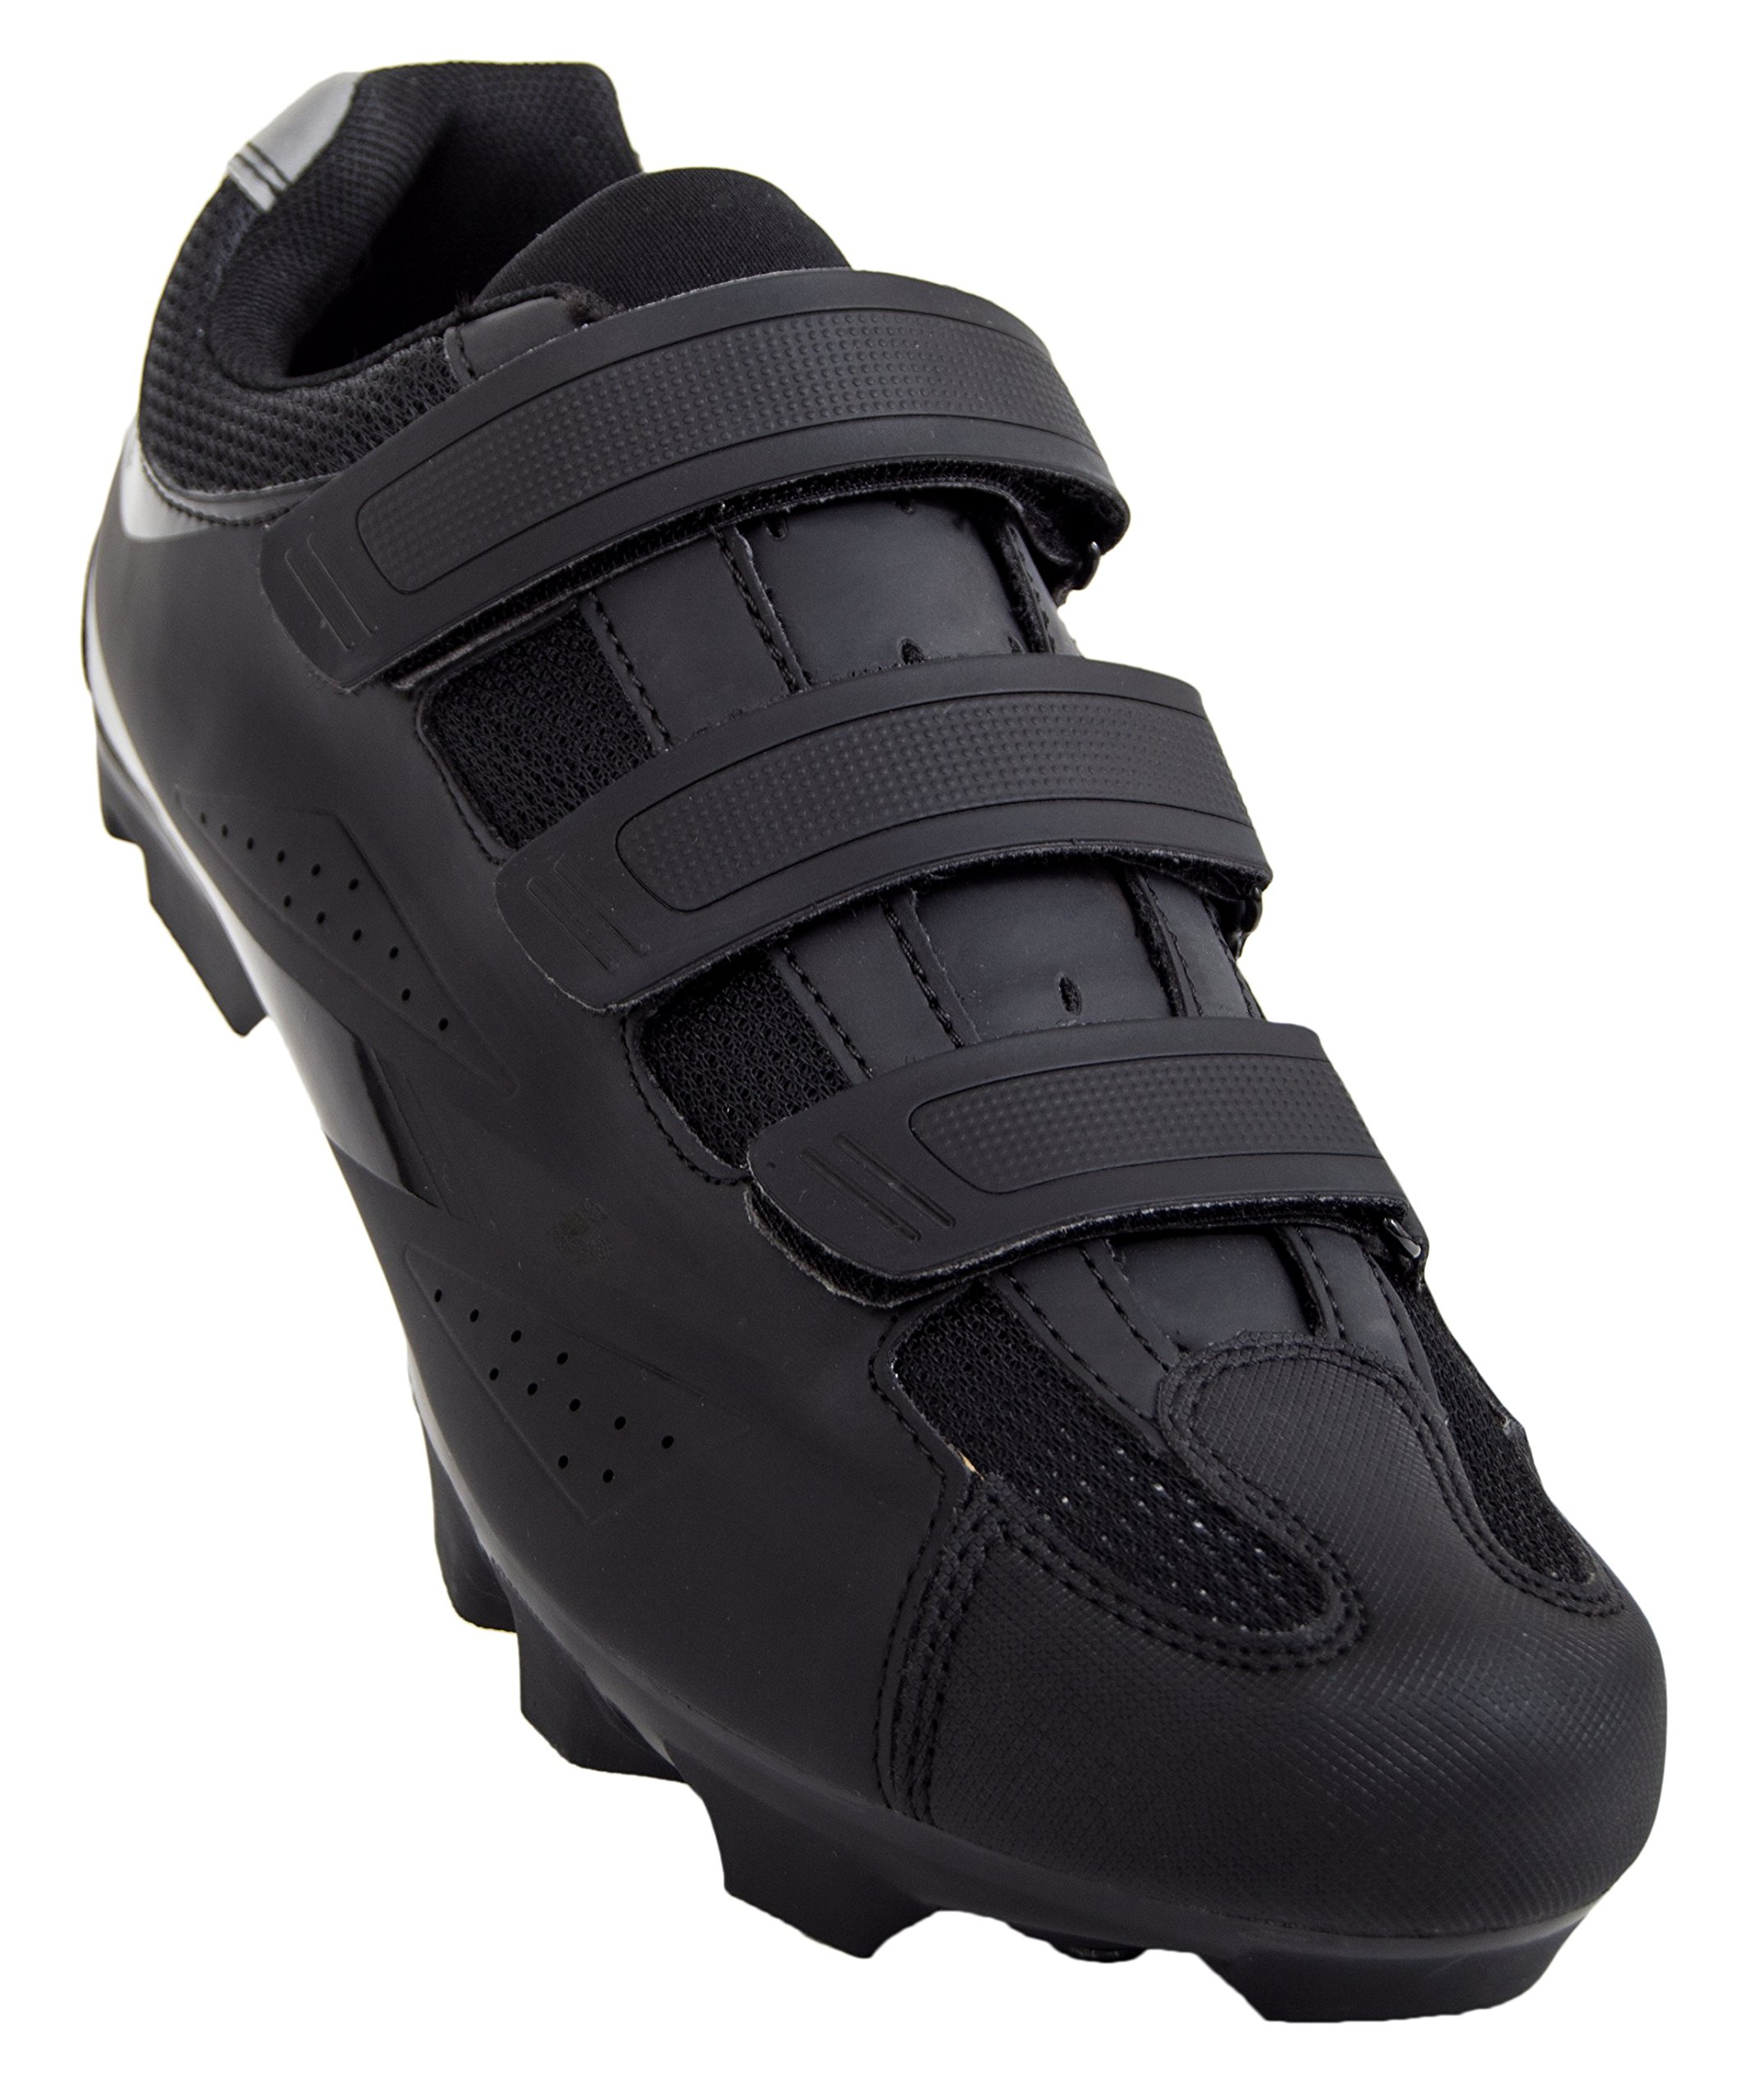 Tommaso Montagna 100 Men's Mountain Bike MTB Spin Cycling Shoe Compatible with SPD Cleats Black - 44 by Tommaso